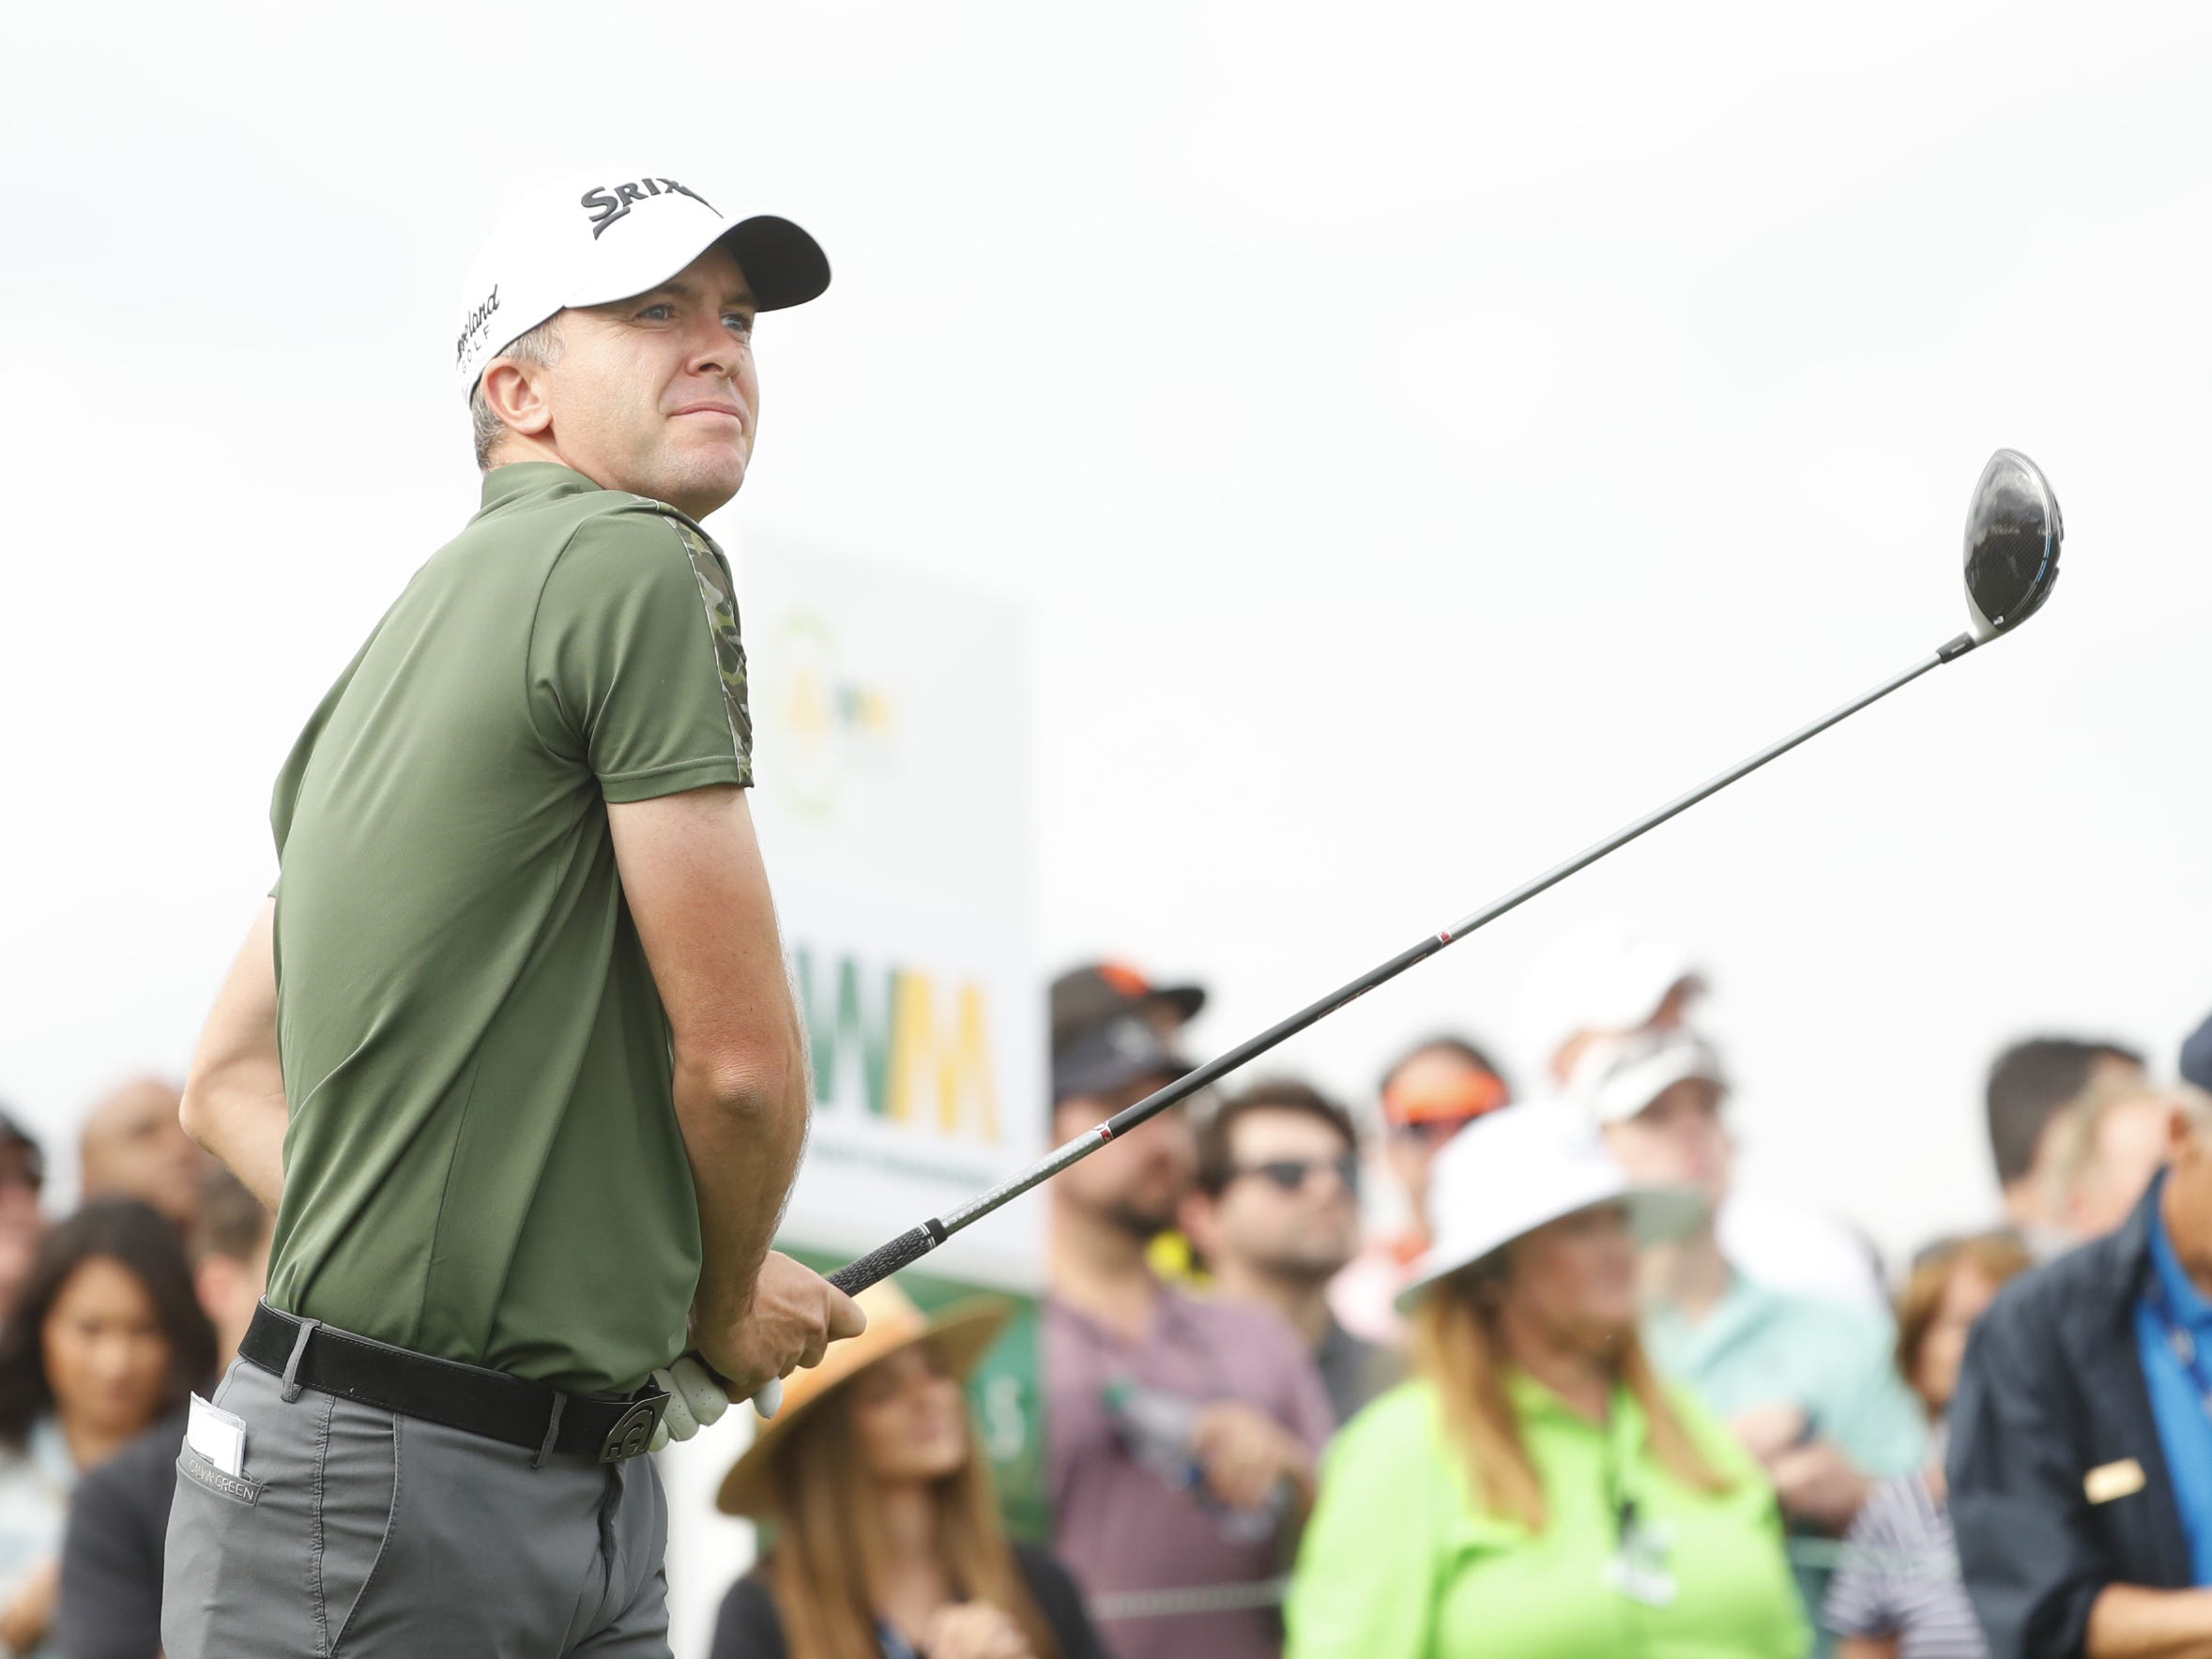 Martin Laird tees off on the 15th hole during the third round of the Waste Management Phoenix Open at TPC Scottsdale in Scottsdale, Ariz. on February 2, 2019.